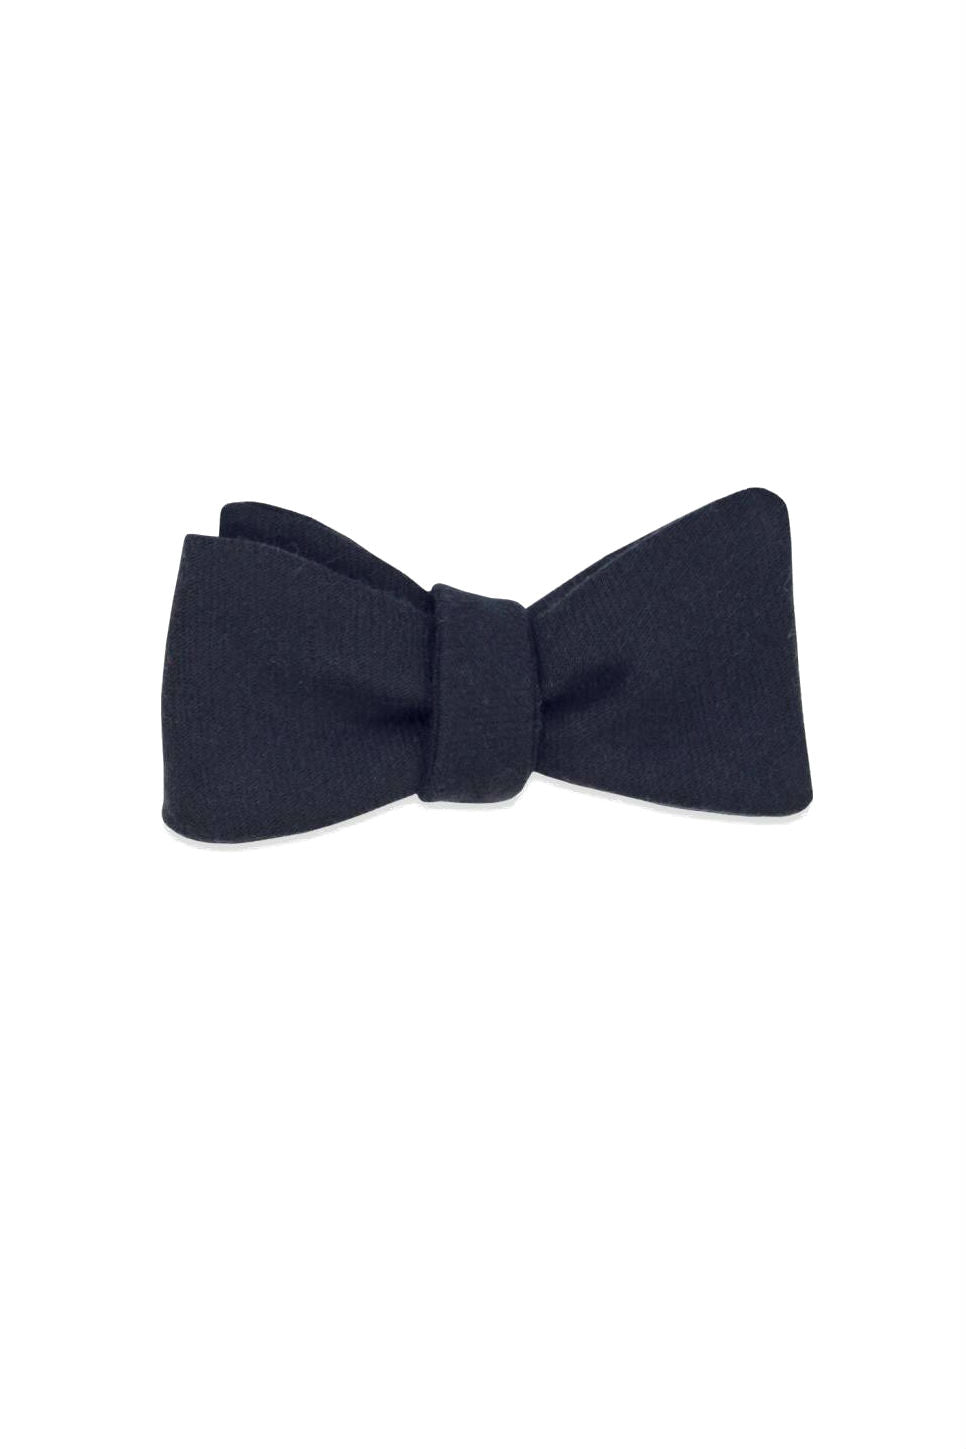 Pocket Square Clothing - The Turner Bow Tie - Navy